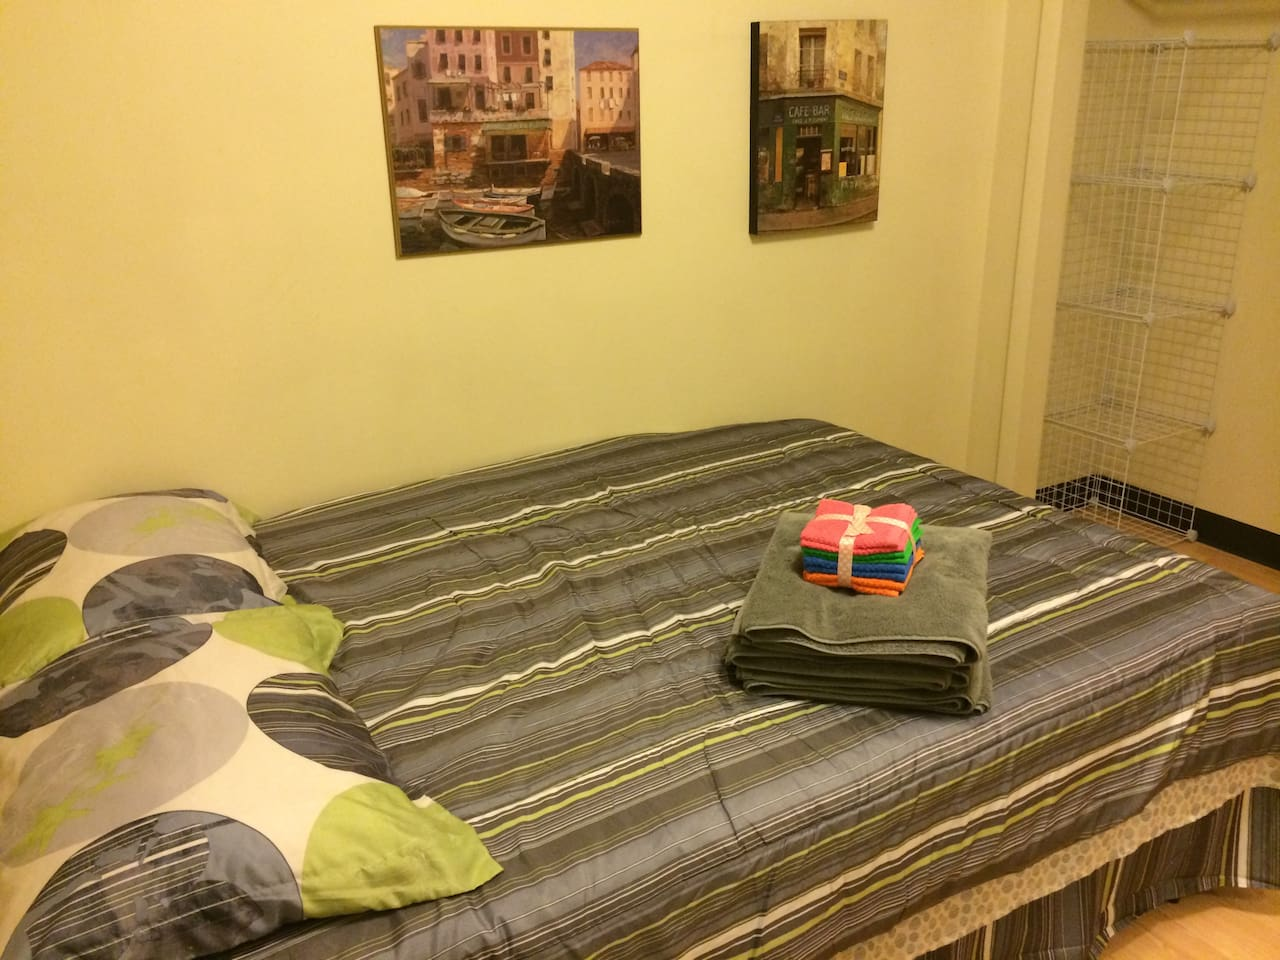 Your Bed To Sleep on! Fresh sheets, blankets and towels!